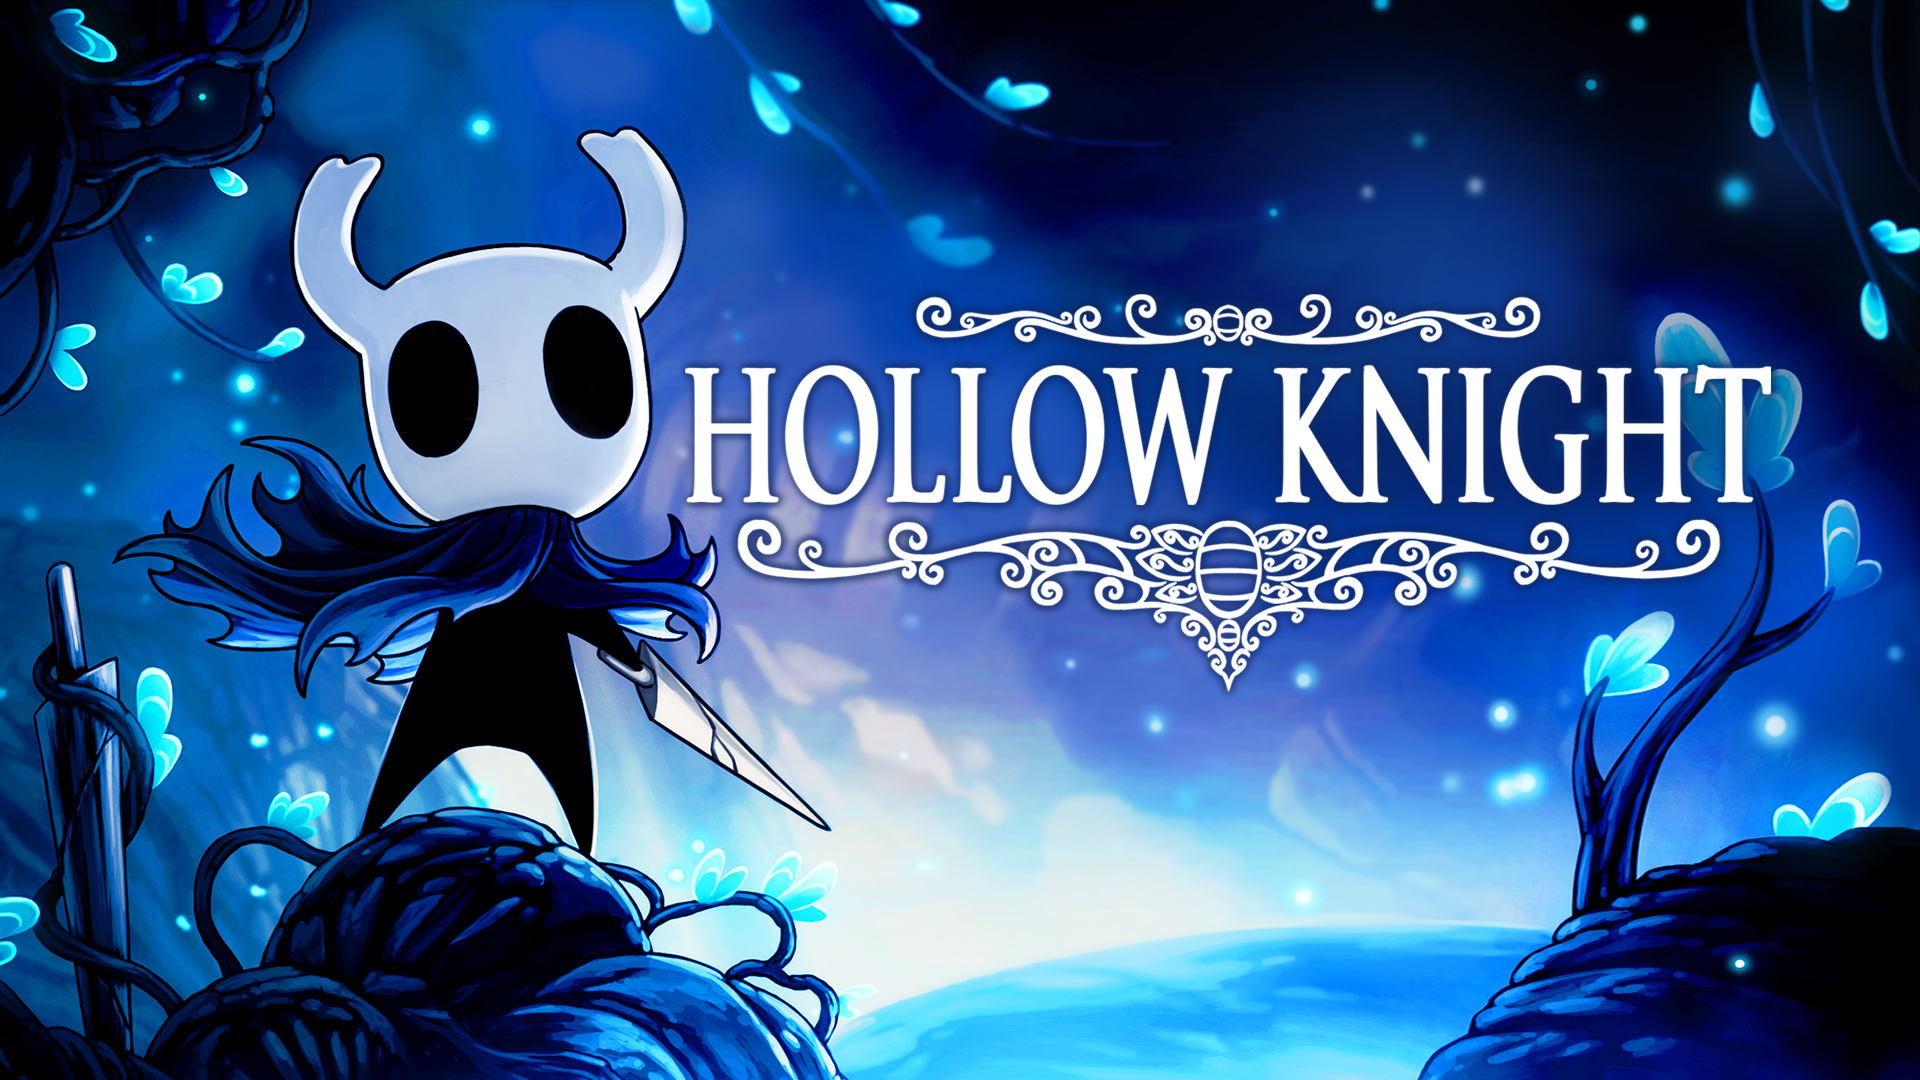 How to see the true ending of Hollow Knight: all the requirements you must meet